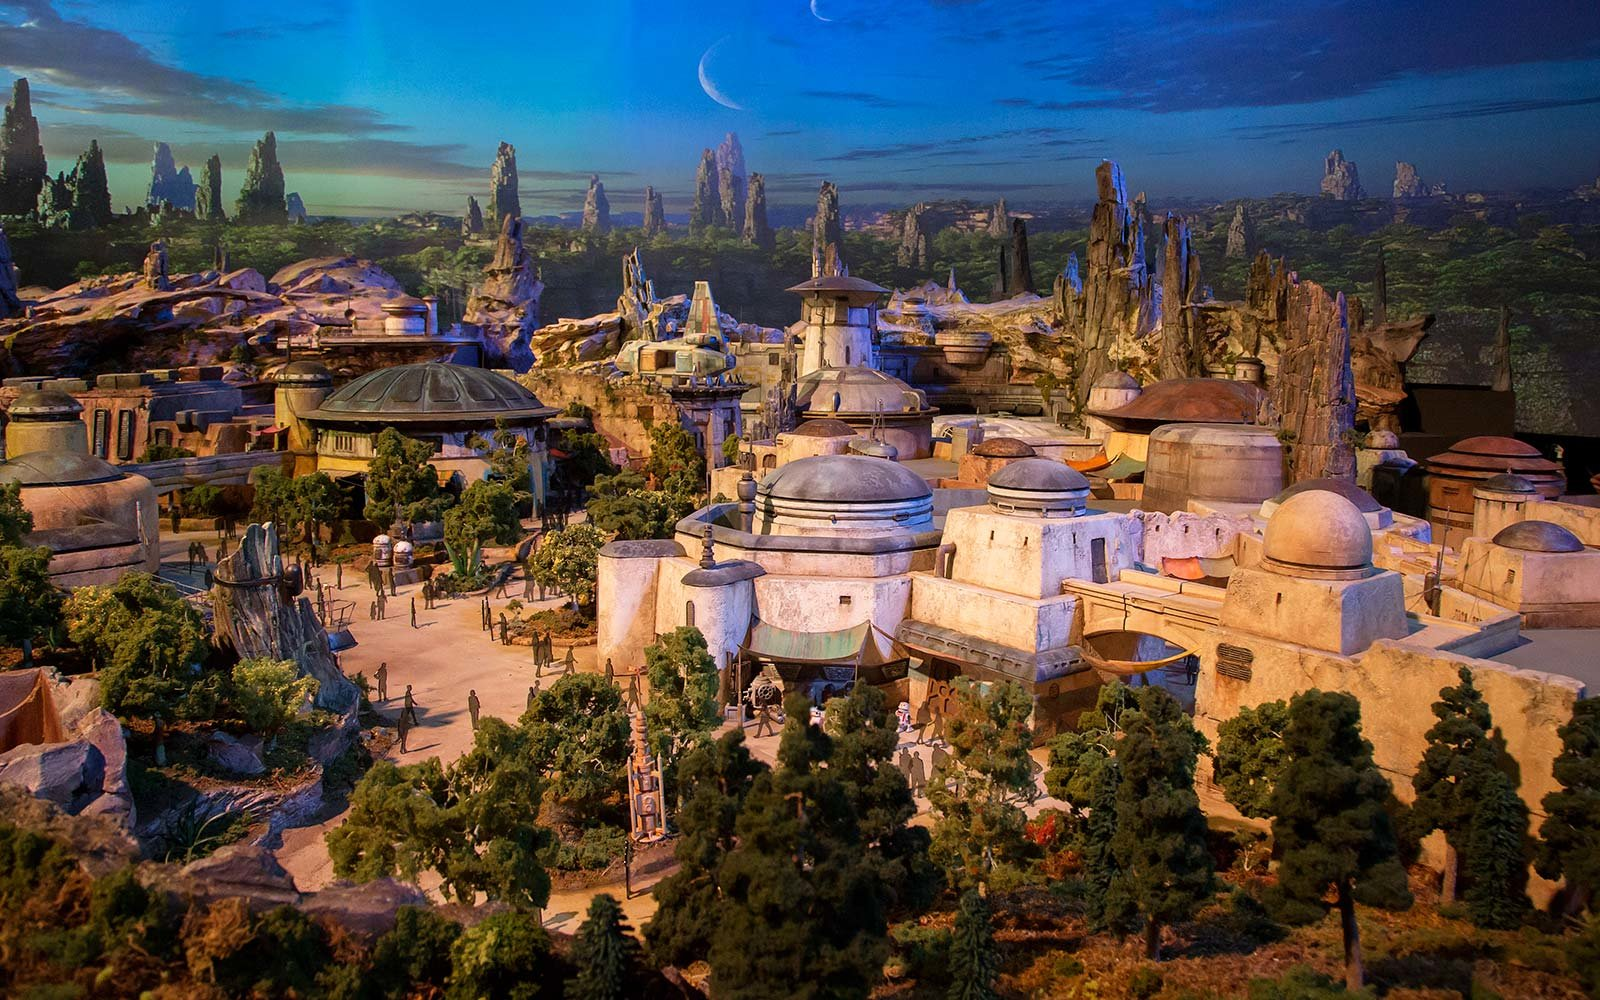 The epic, fully detailed model of the Star Wars-themed lands under development at Disneyland park in Anaheim, Calif. and Disney's Hollywood Studios in Orlando, Fla. remains on display in Walt Disney Parks